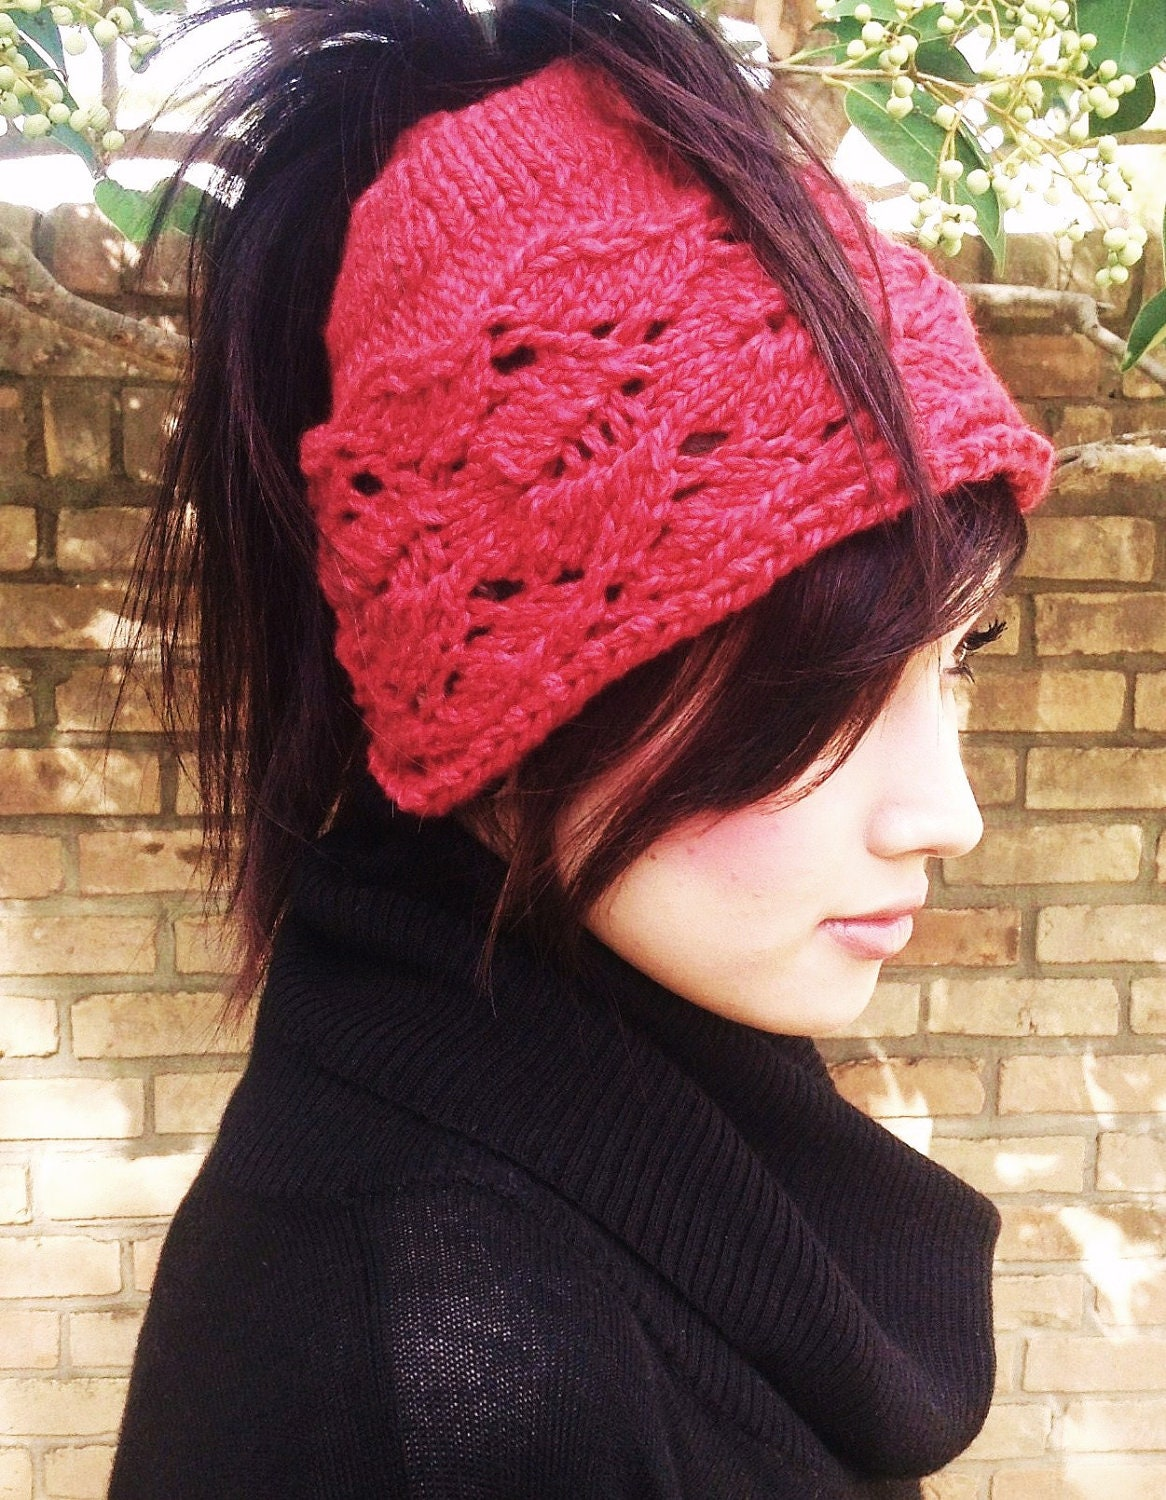 Knitting Pattern Ponytail Hat : knit ponytail hat on Etsy, a global handmade and vintage marketplace.